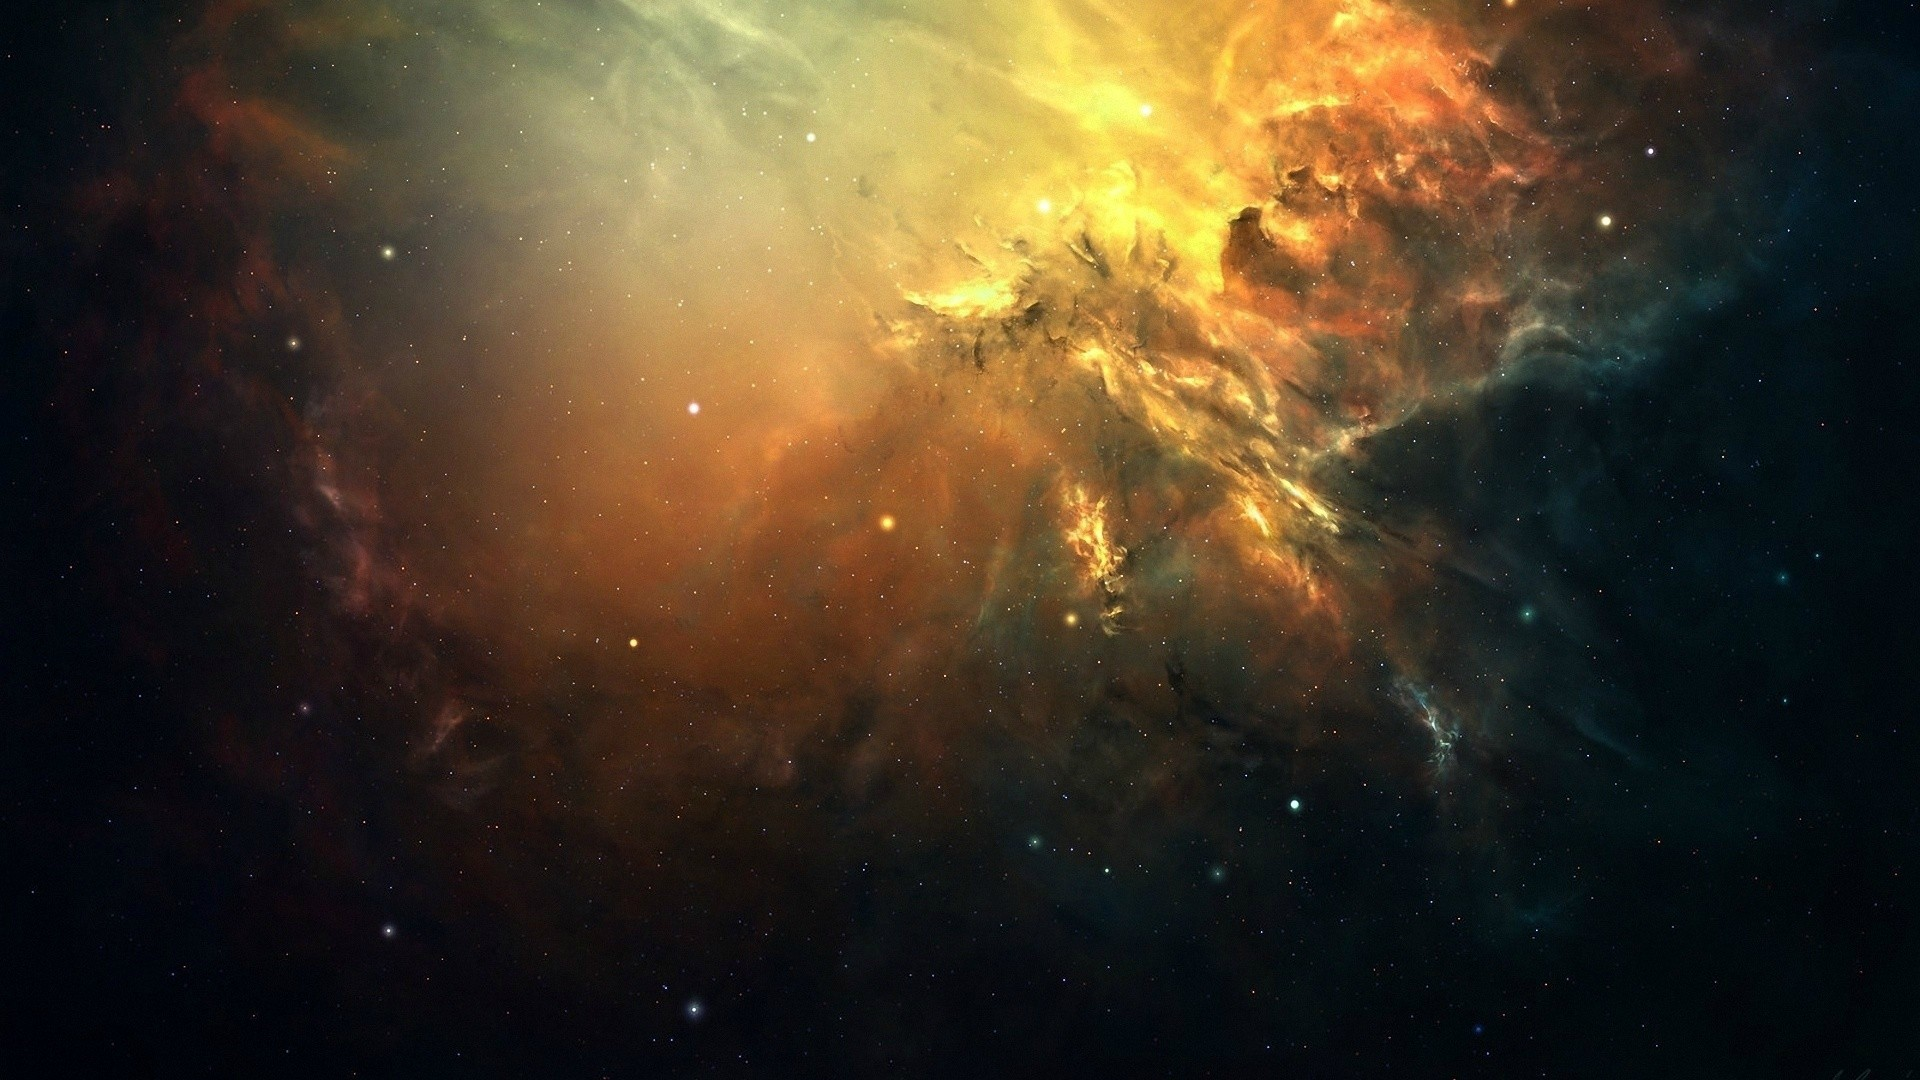 Some Space Wallpapers3